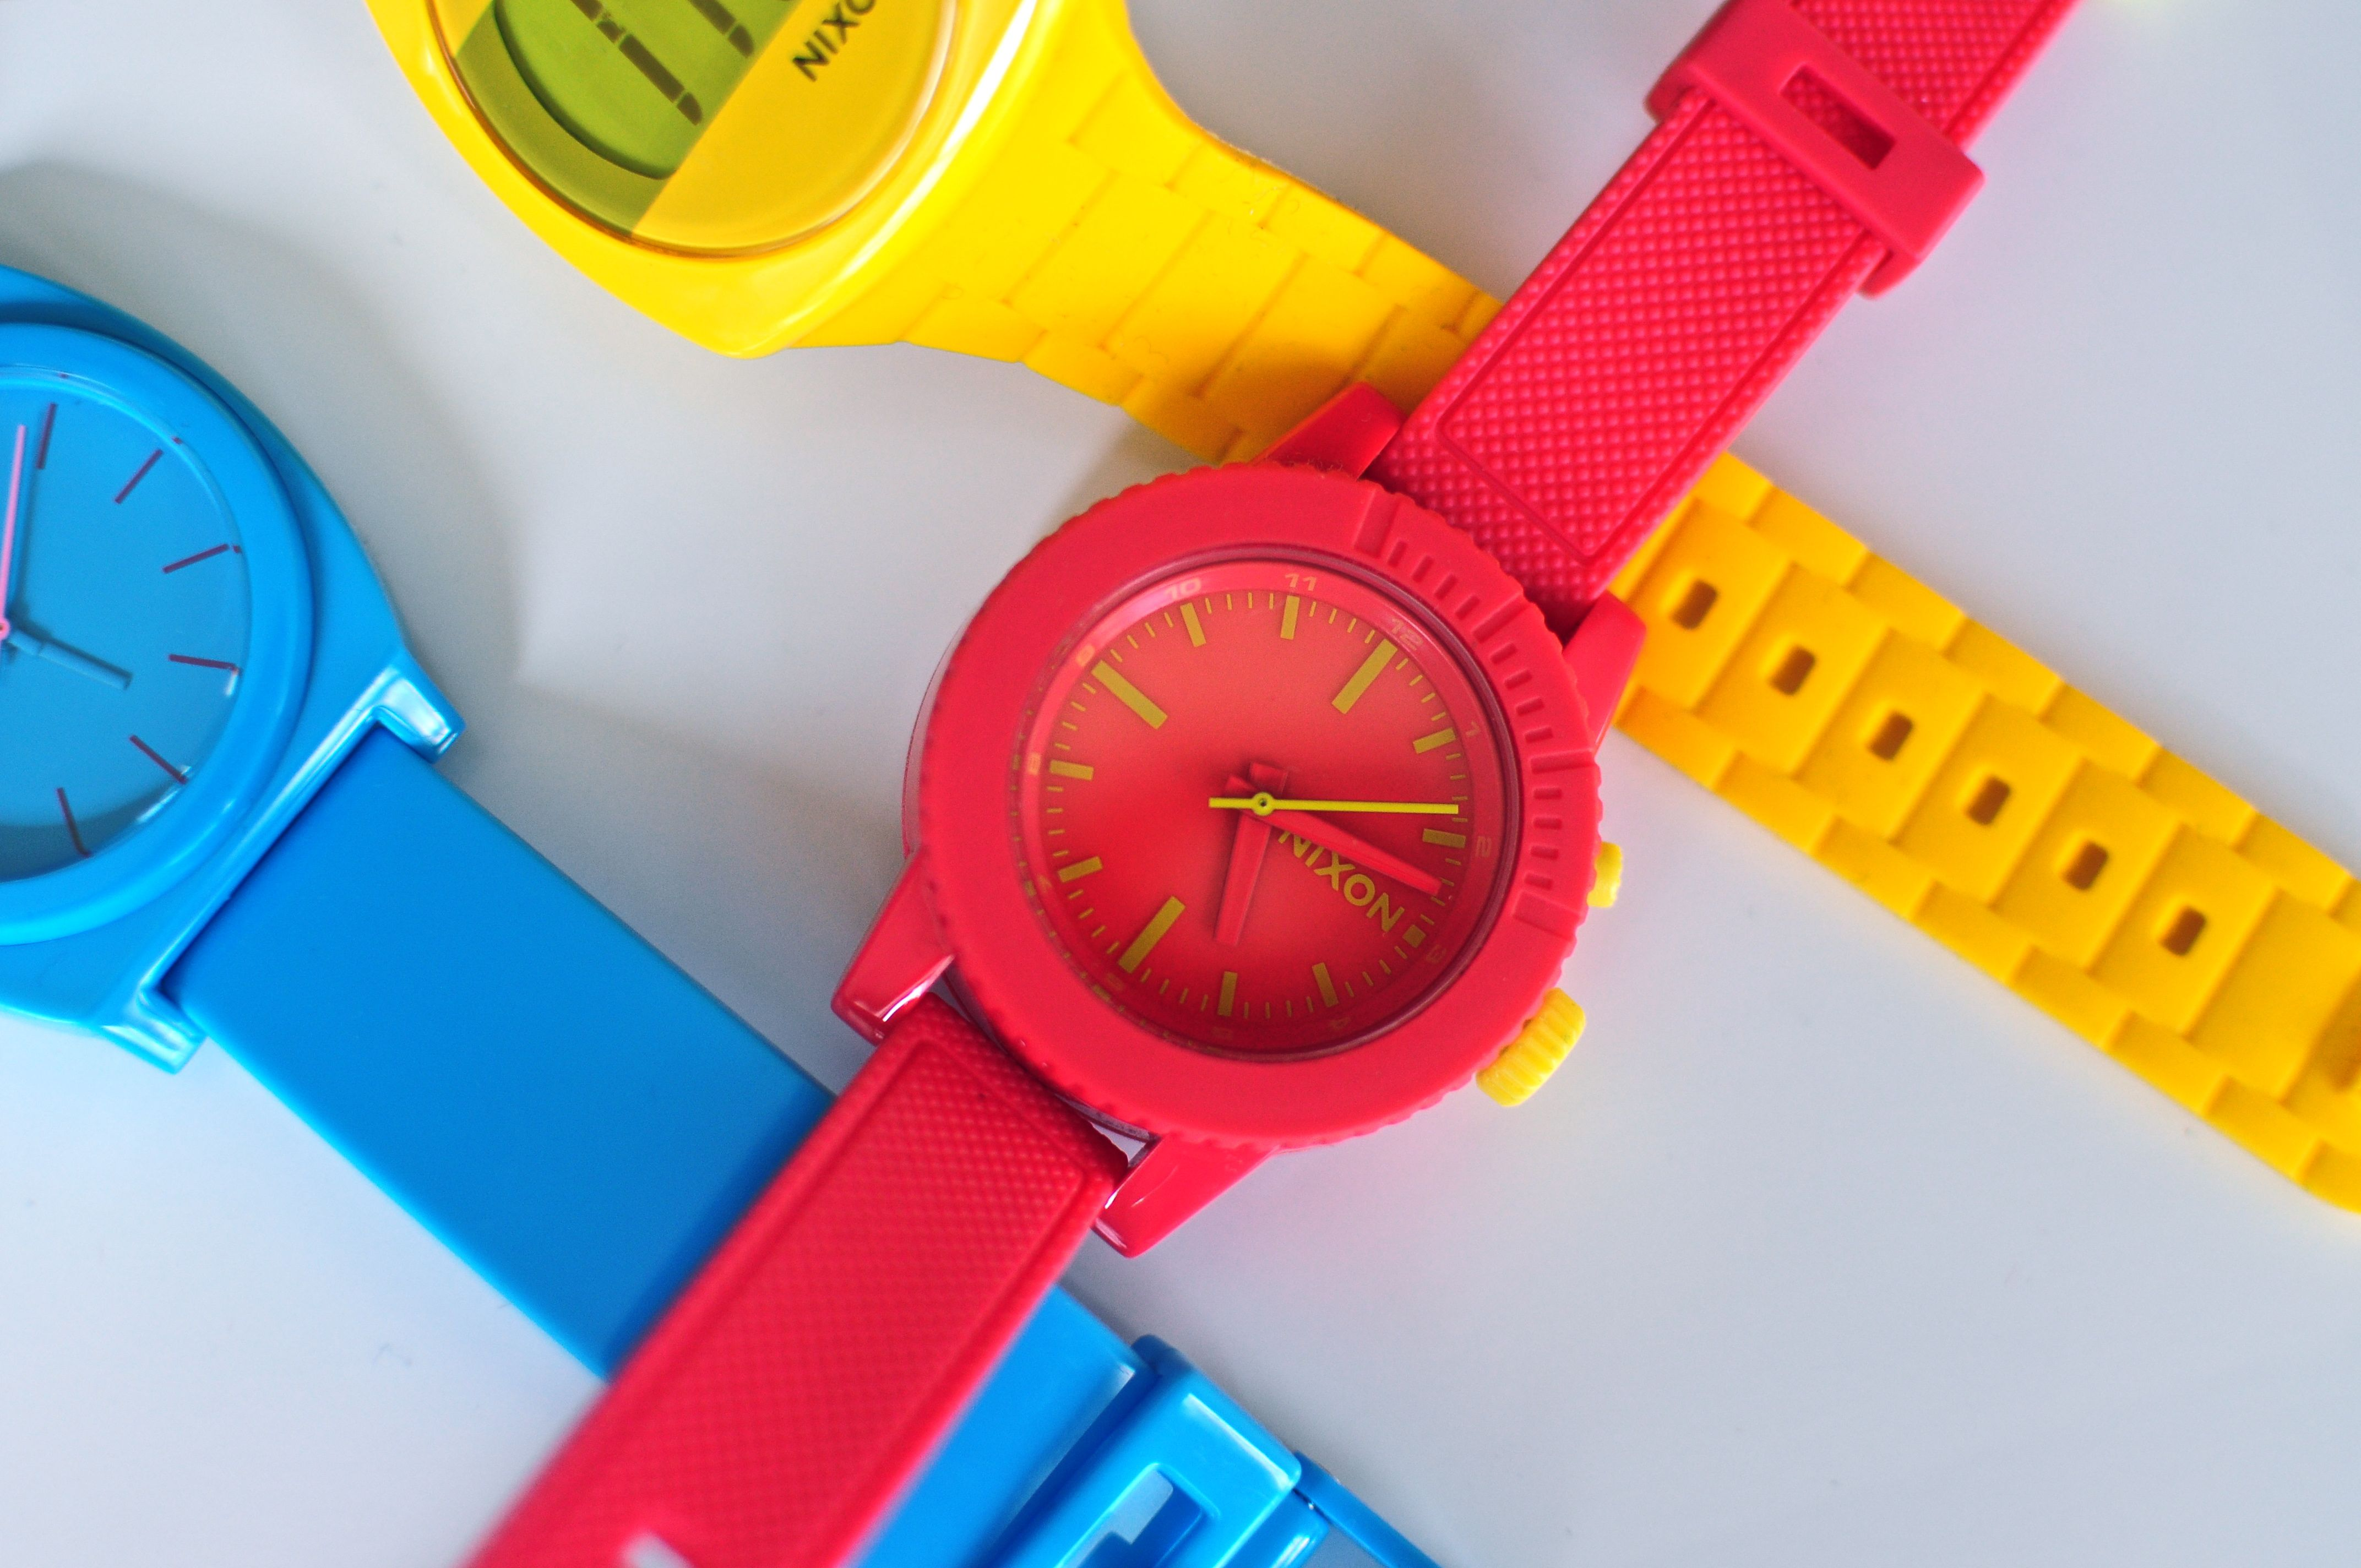 Pin By Agos Alonso On Perspective Red Blue Yellow Colorful Watches Primary Colors